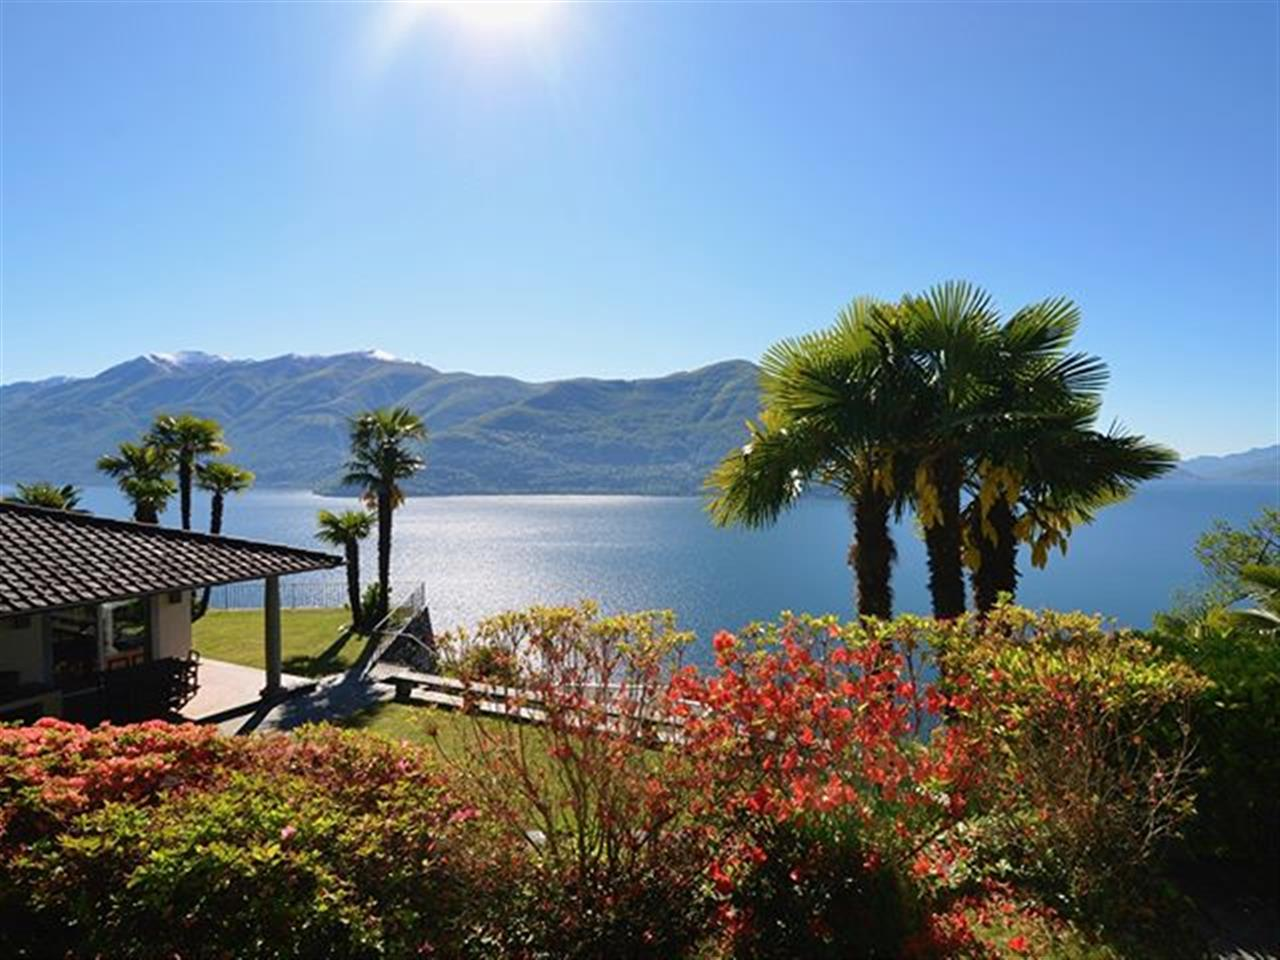 Swiss mediterranean life style. Beautiful view to #LakeMaggiore in #Ticino #Switzerland. This mediterranean #Villaforsale is situated in #Brissago with a splendid garden. For more search with ref. 88459 at our website. #luxuryvilla #luxuryrealestate #visitlugano #luganomycity #inlovewithswitzerland #luxurylife #luxurylifestyle #christiesinternationalrealestate #luxuryportfolio #wetagconsulting #leadingre #ChristiesHomes #takemehere #FF #instafollow #l4l #tagforlikes #followback #instagood #tbt #photooftheday #followme #likeforlike #LeadingRElocal